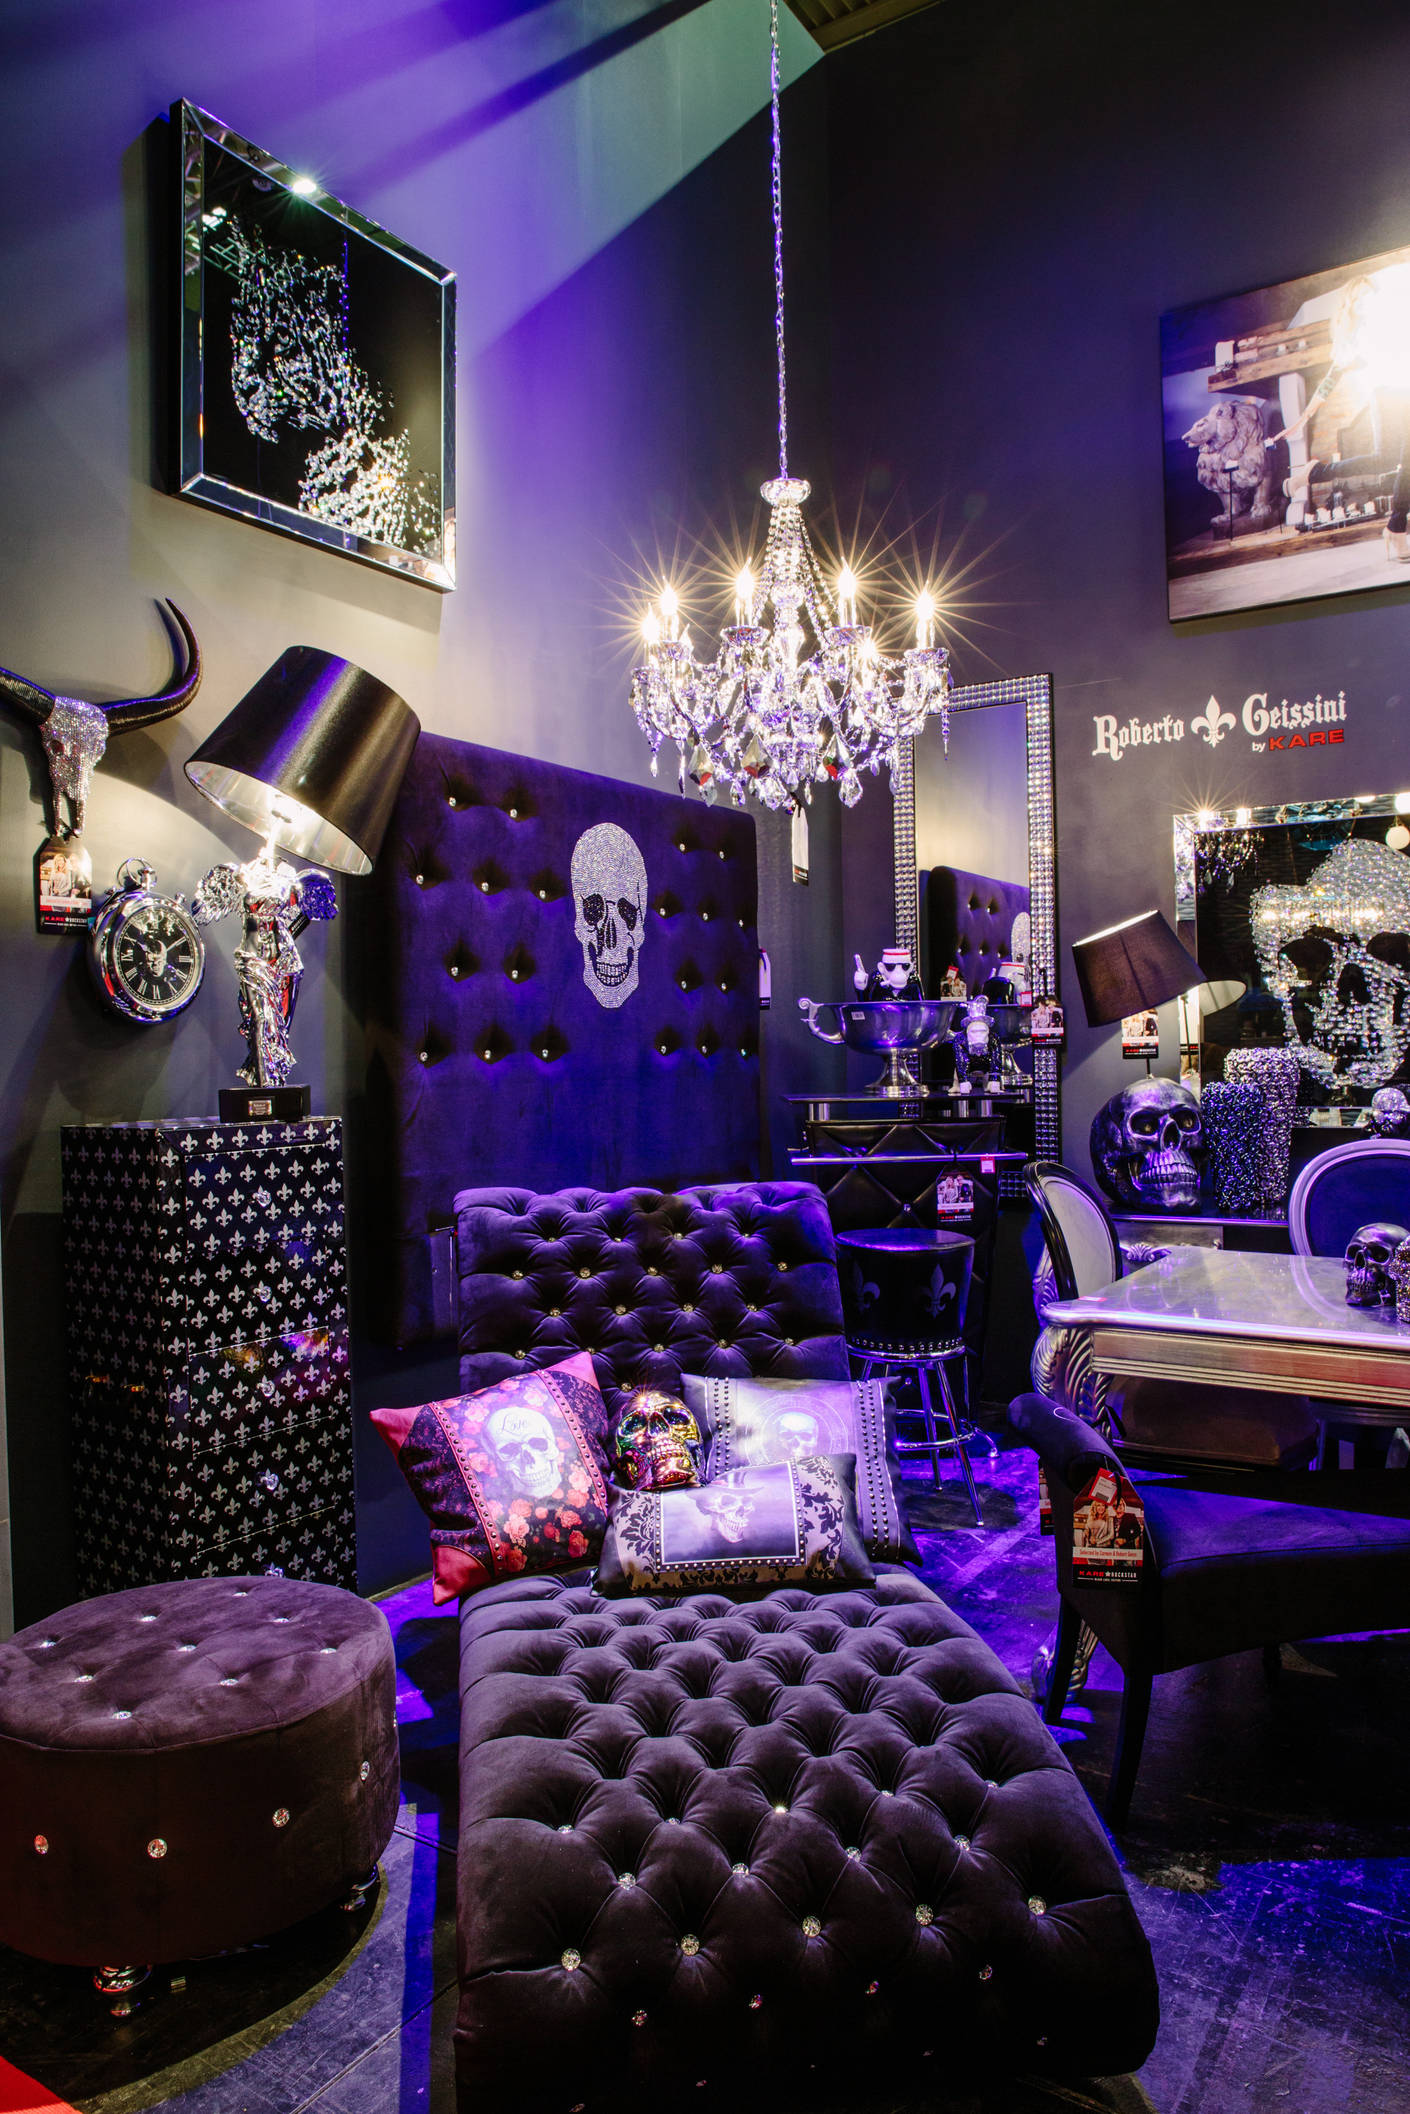 die neue kare kollektion rockstar by geiss. Black Bedroom Furniture Sets. Home Design Ideas